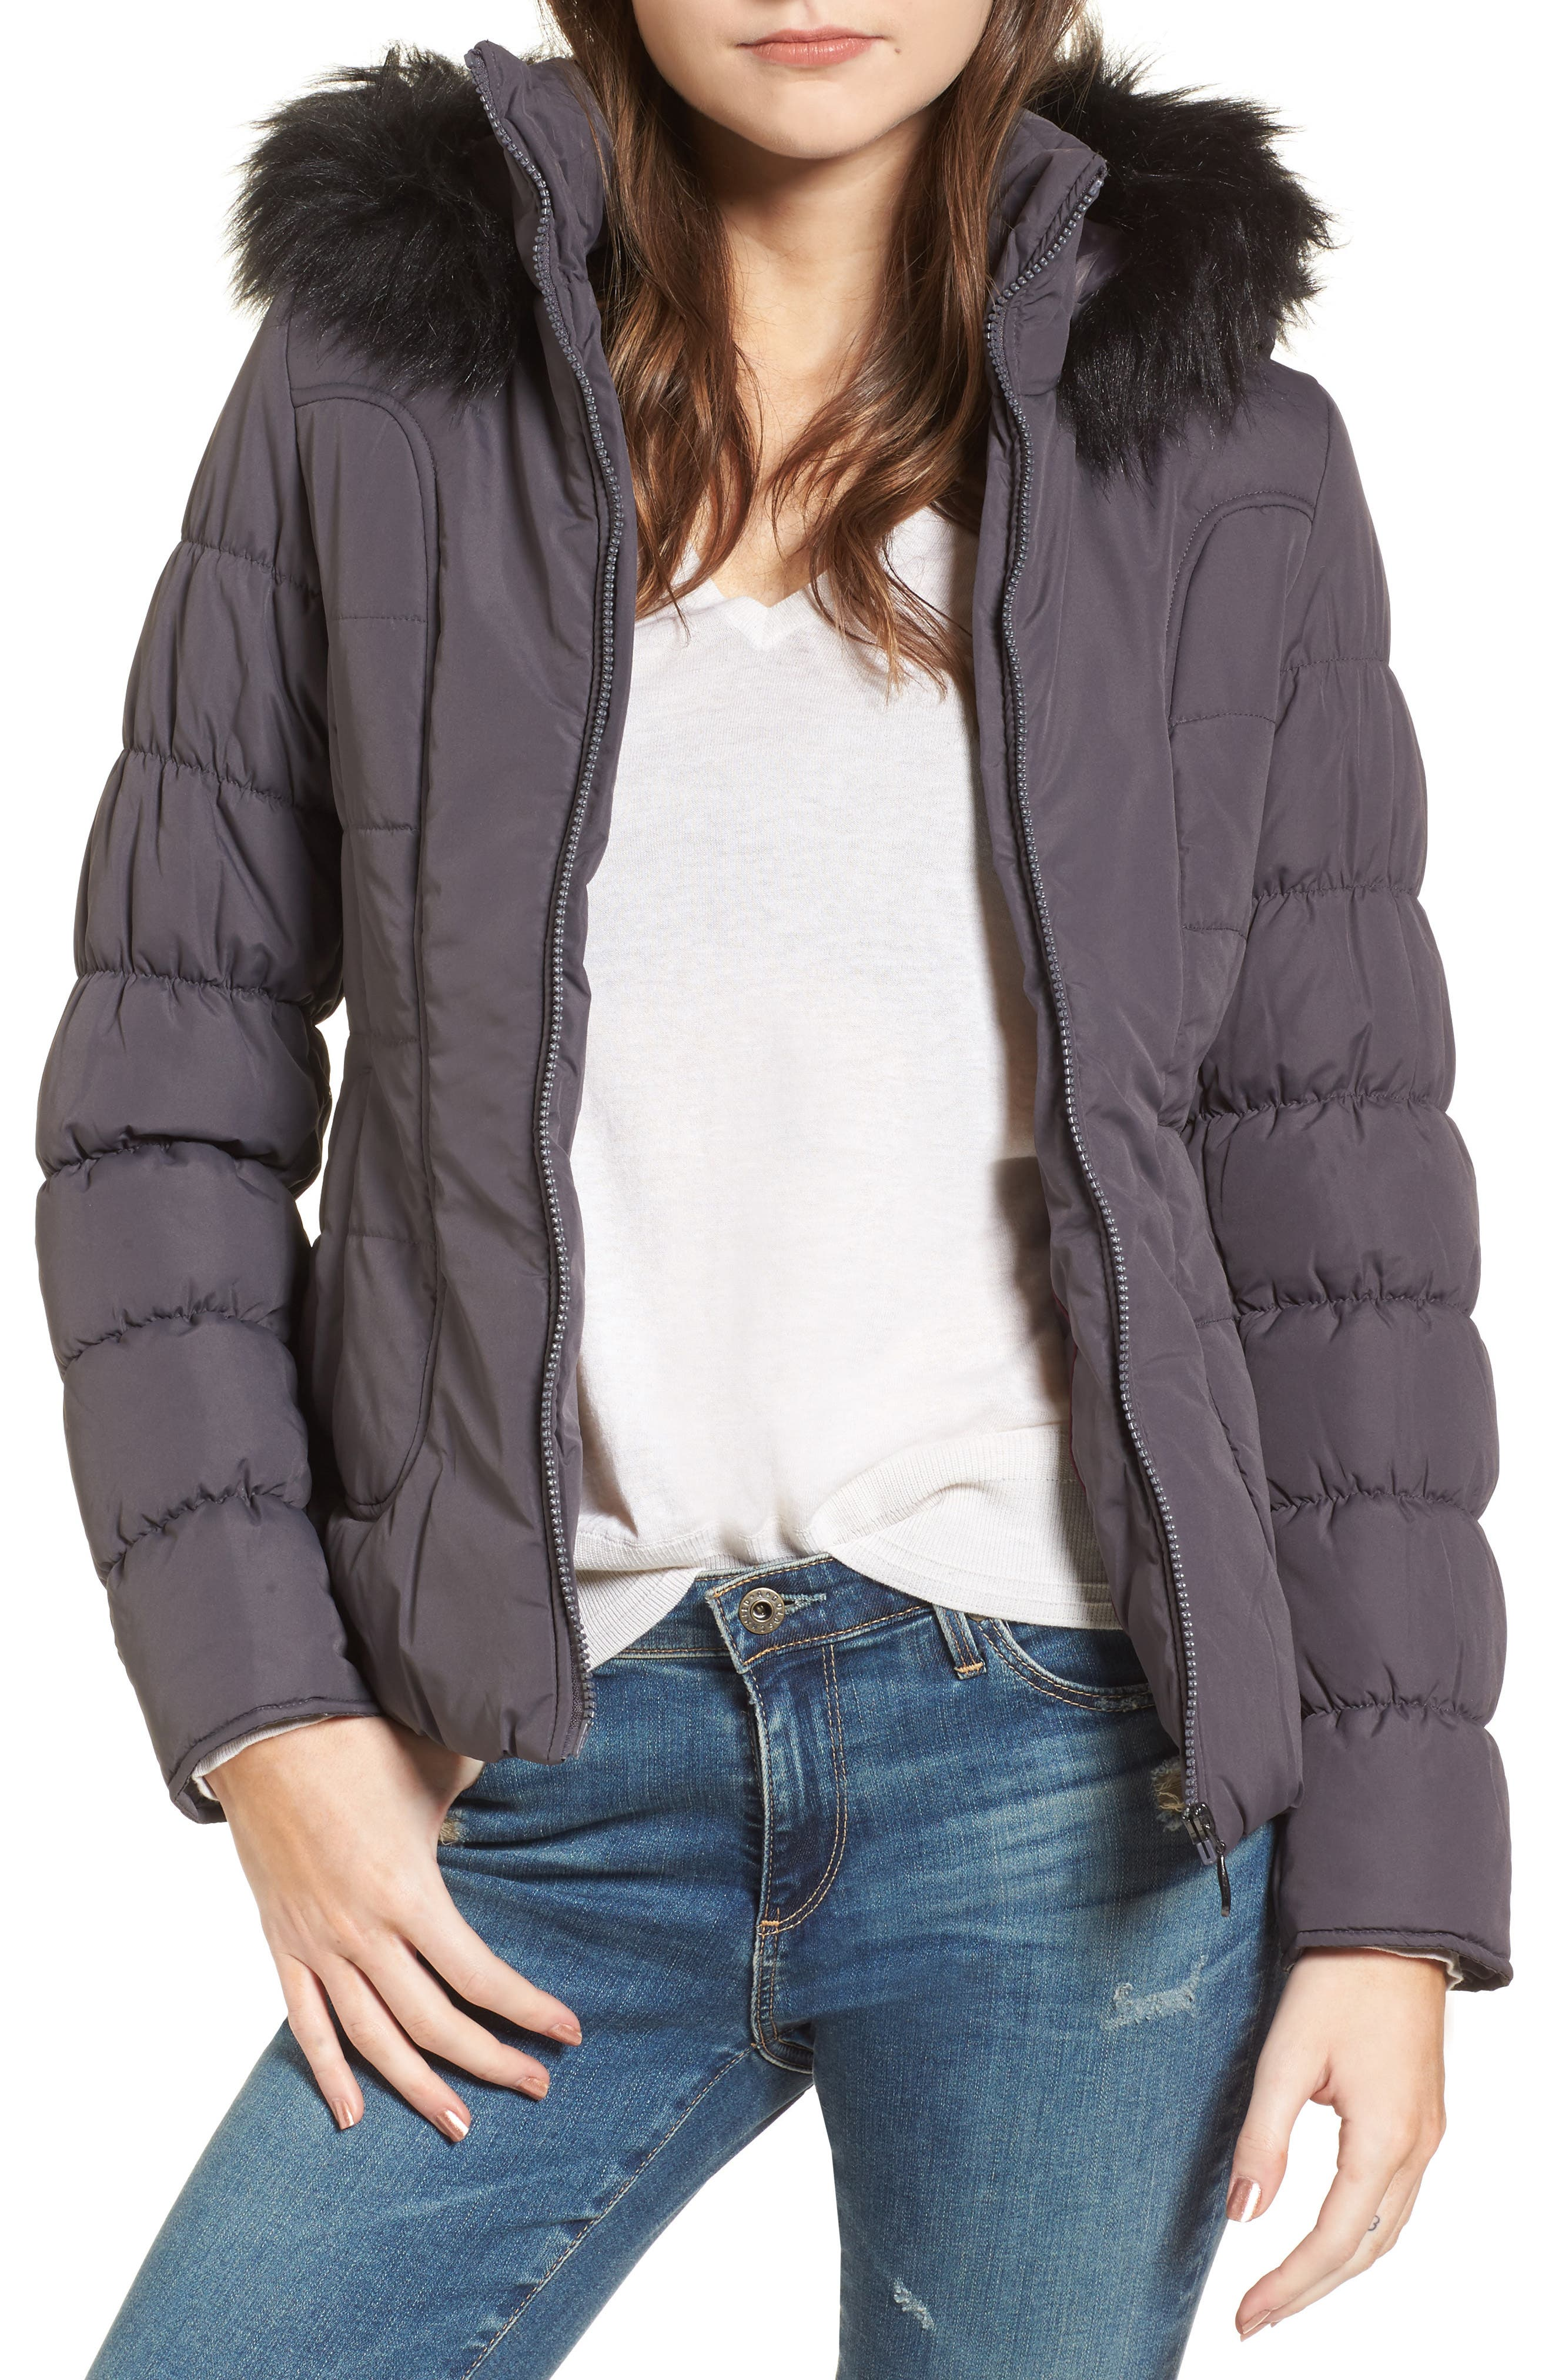 Alternate Image 1 Selected - Maralyn & Me Quilted Jacket with Faux Fur Collar